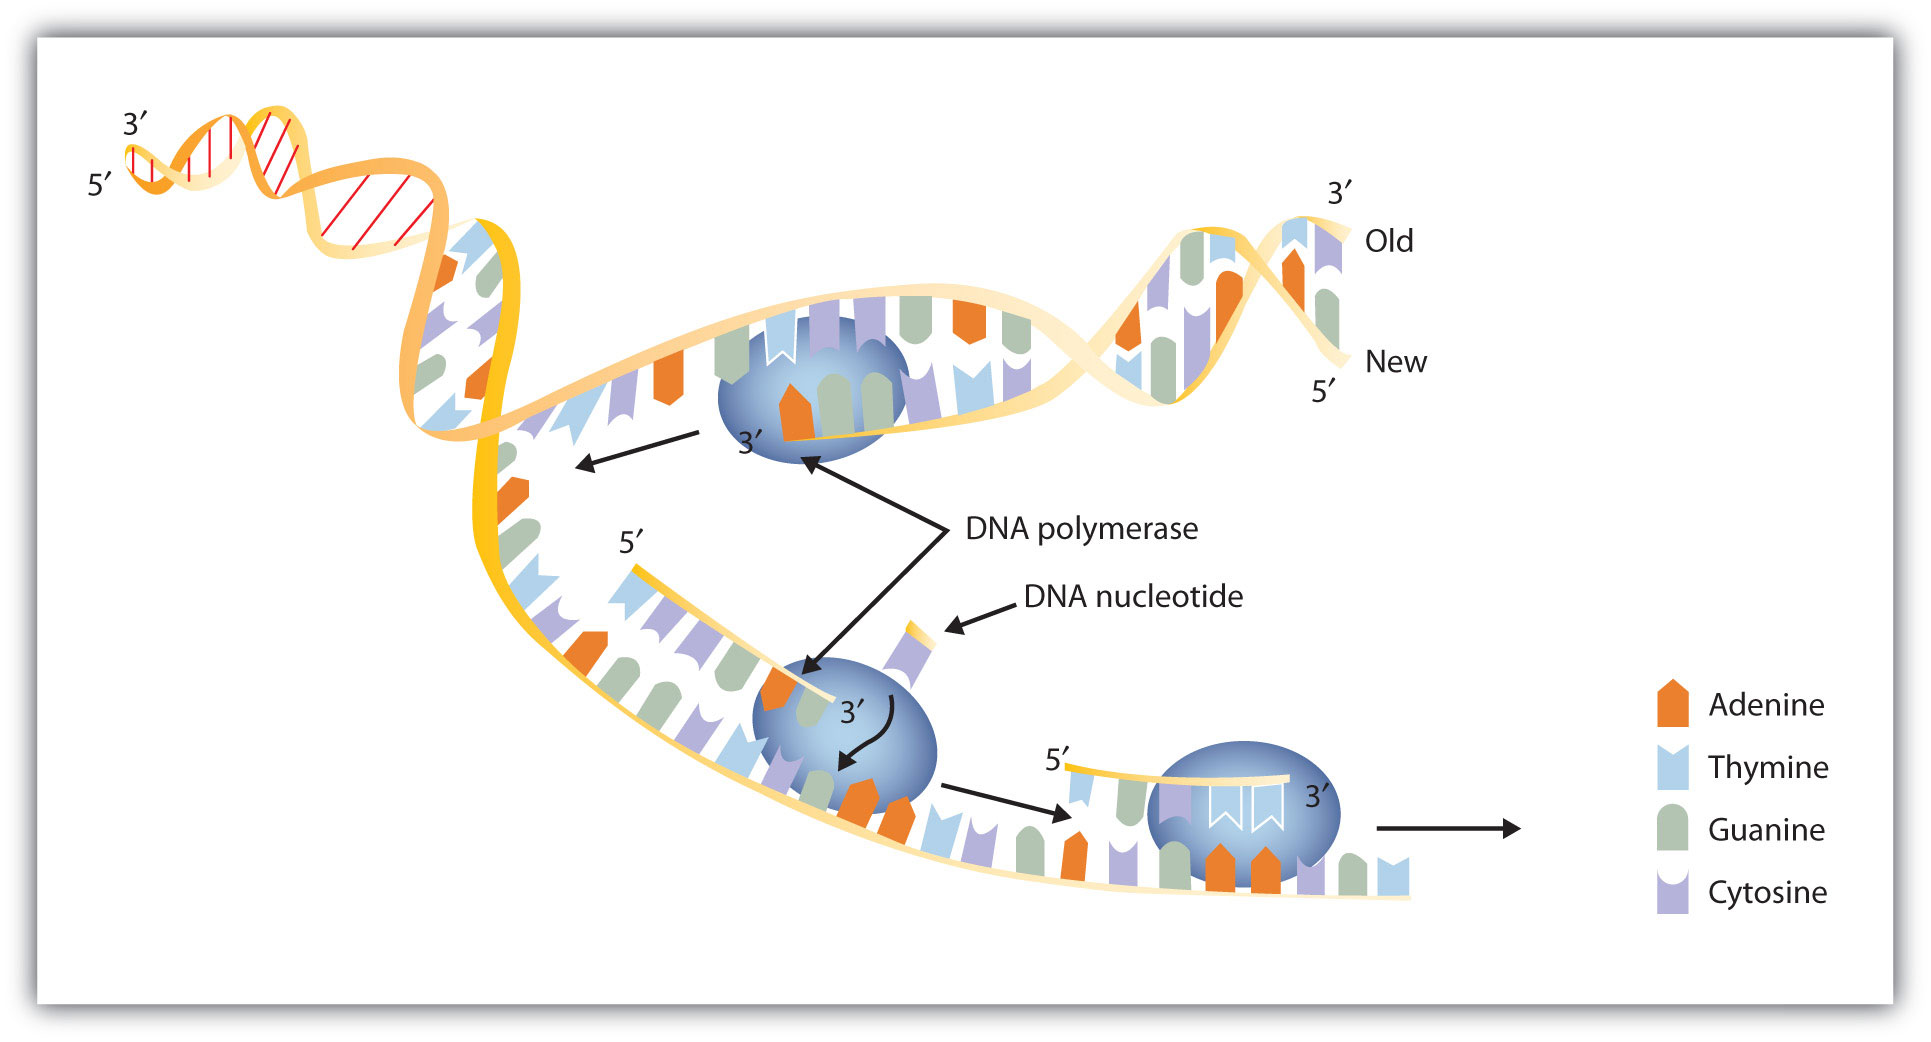 Dna Replication Diagram DNA replication occurs by the